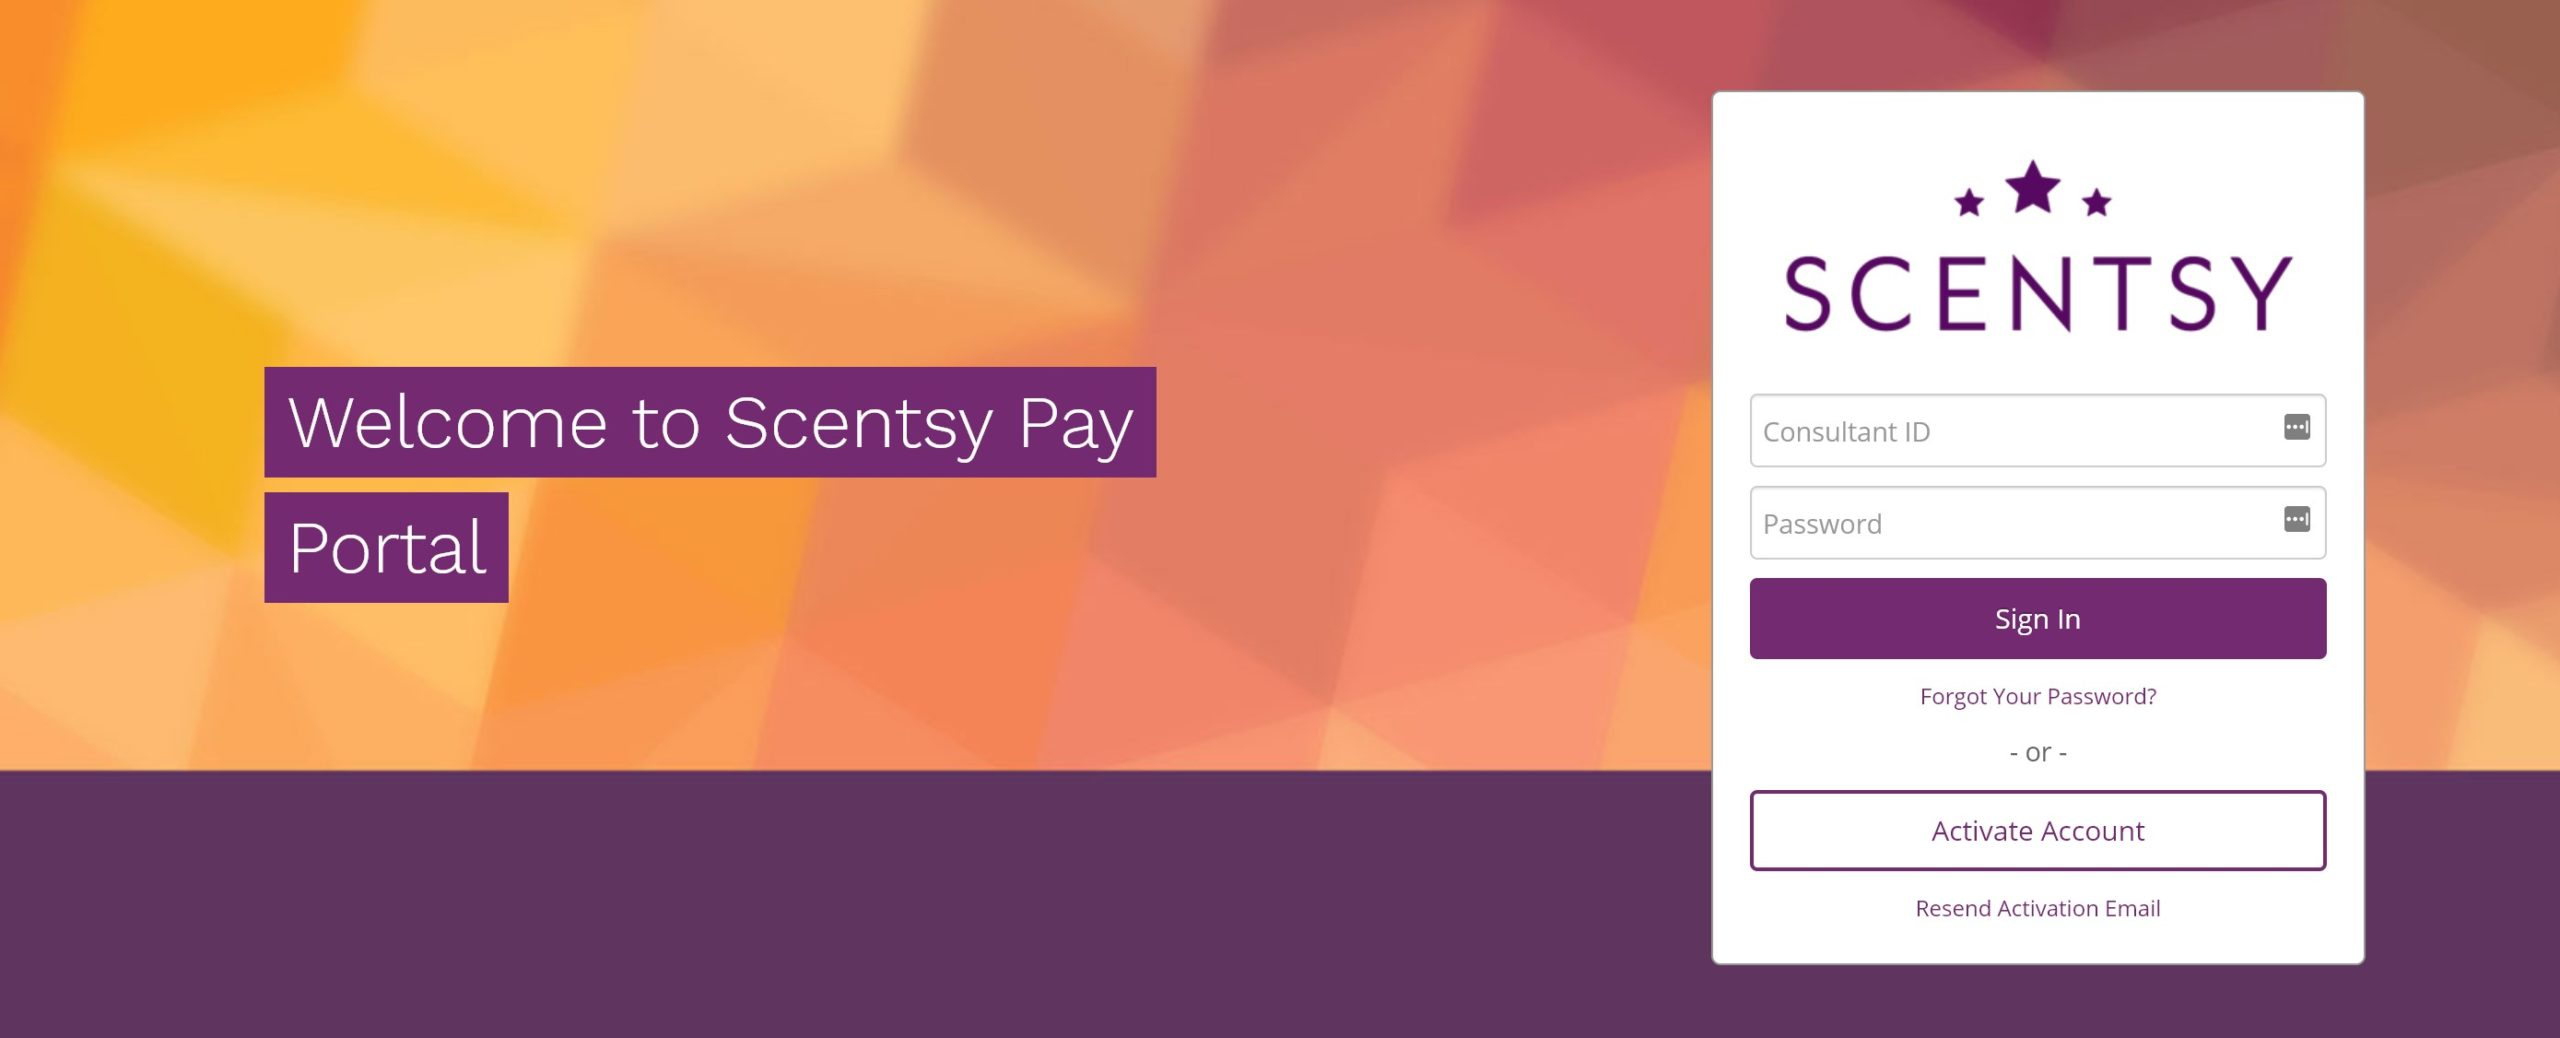 Scentsy pay login